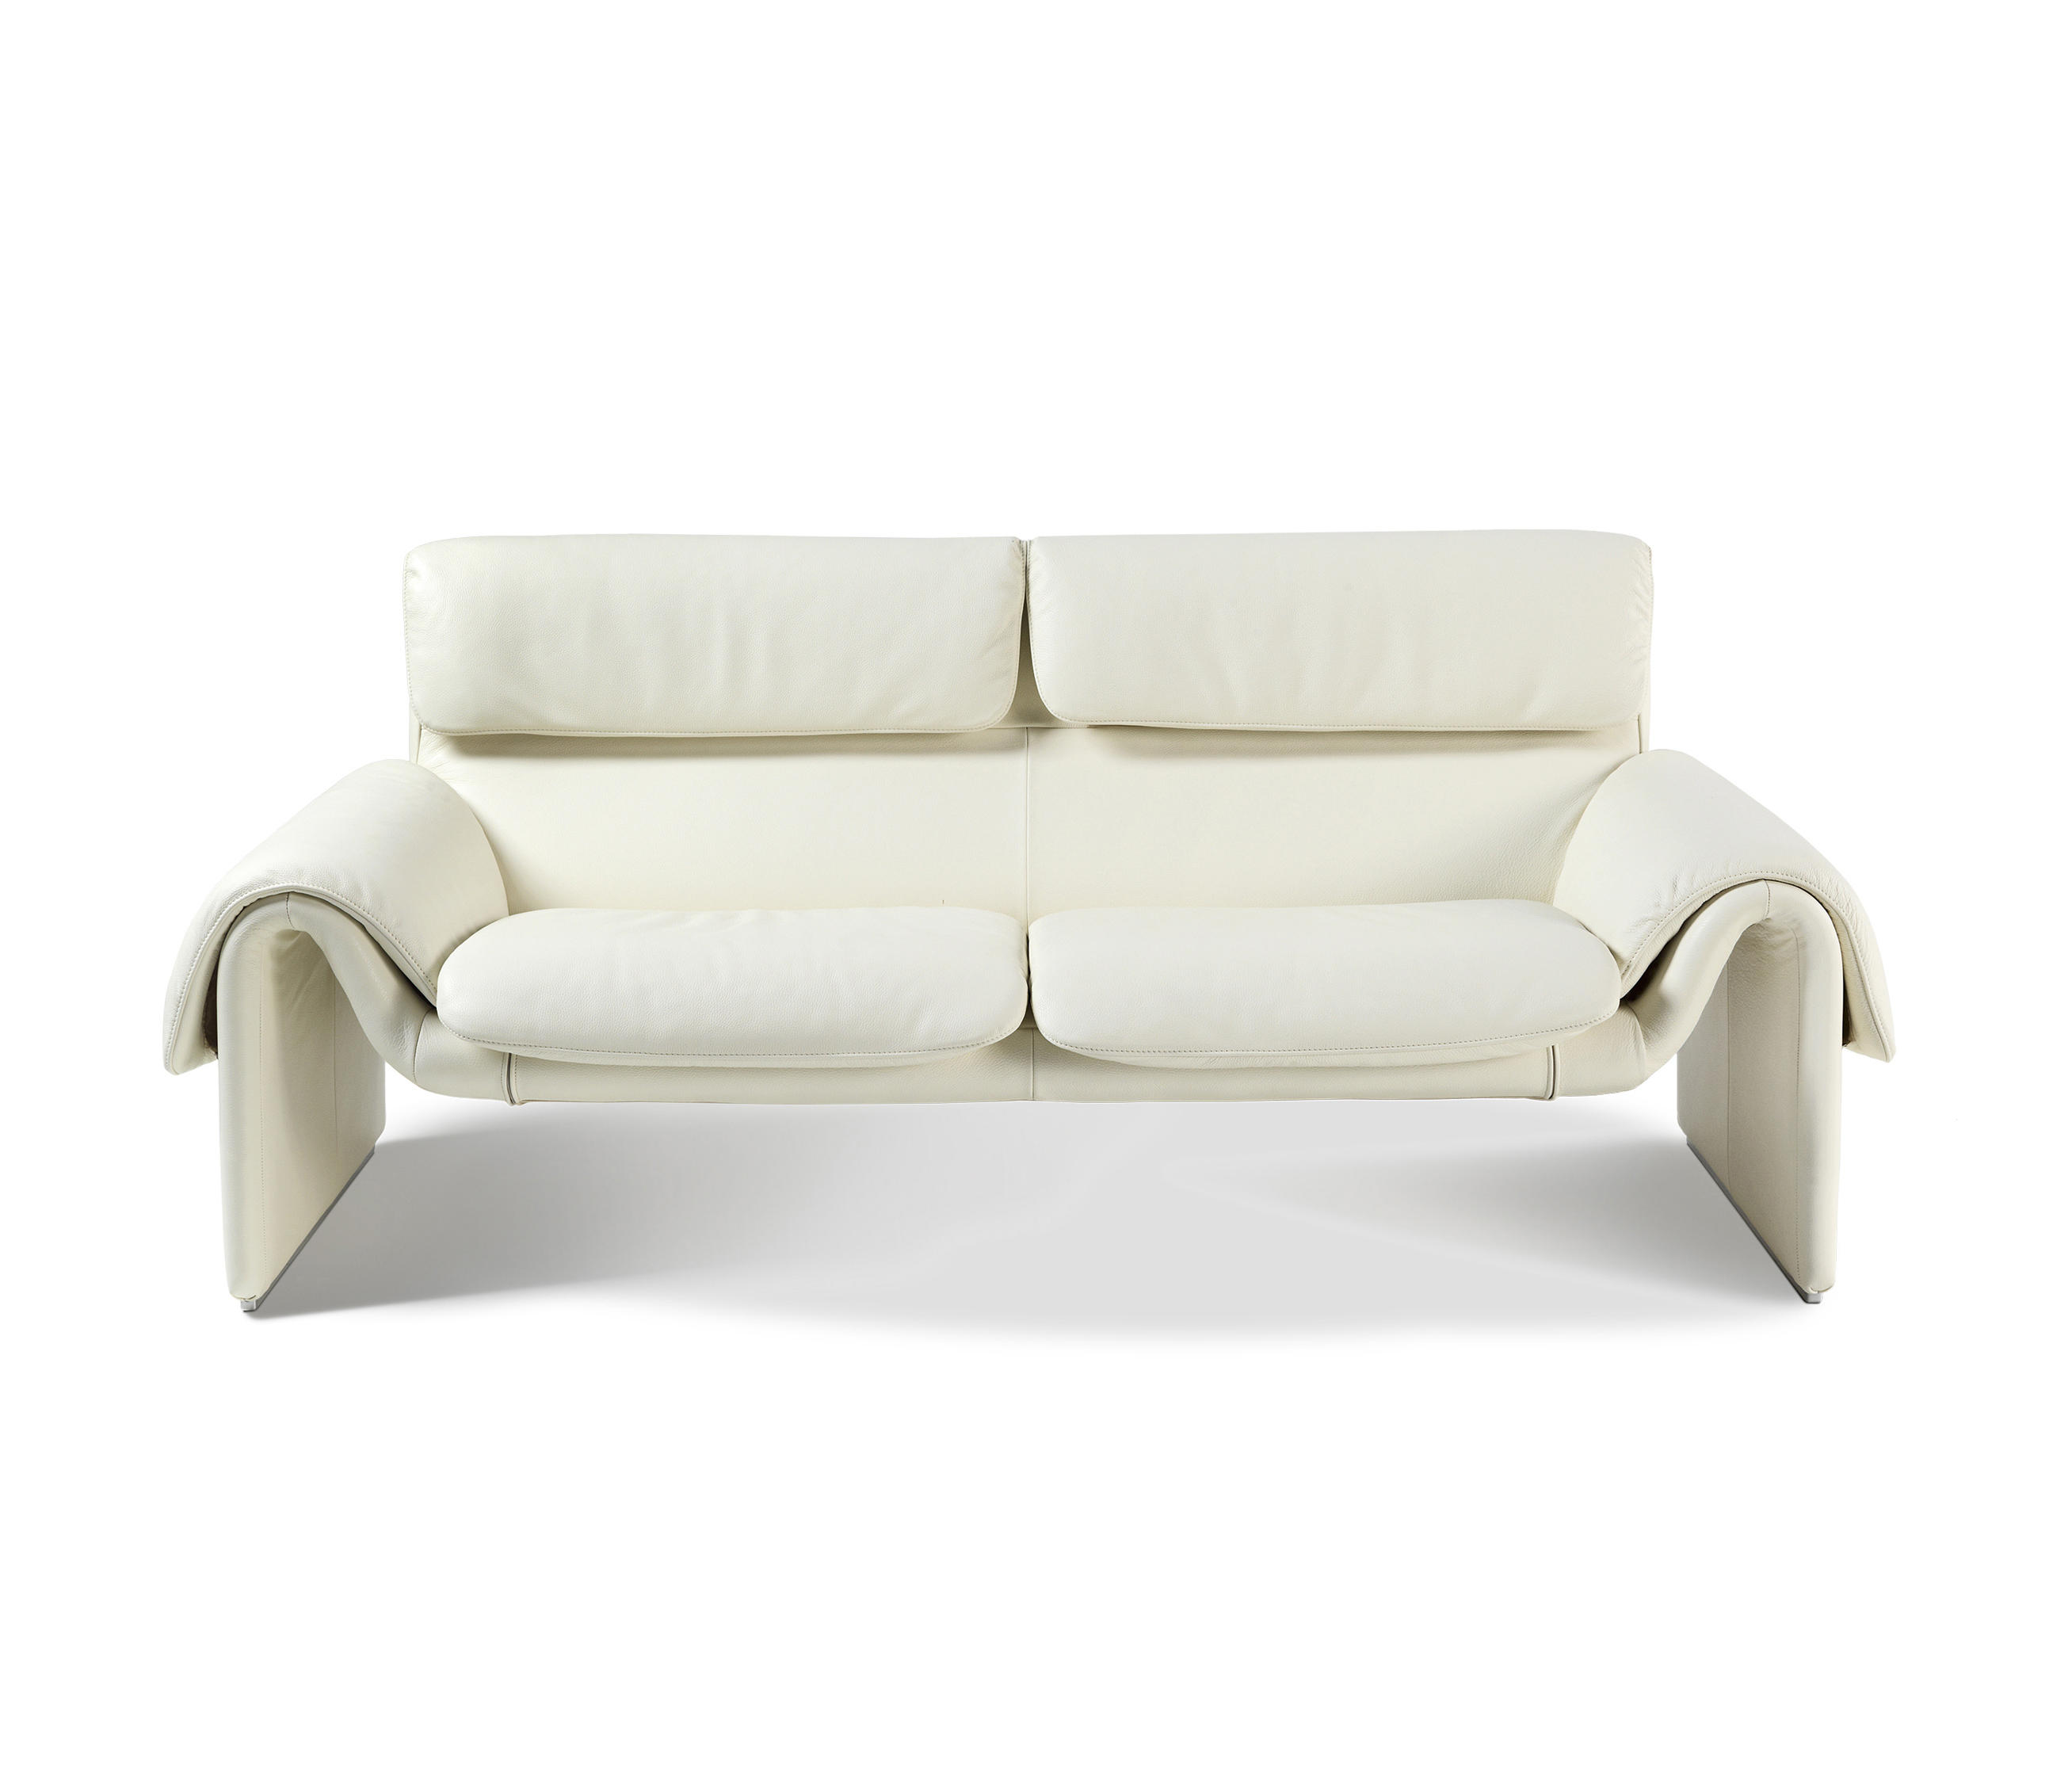 Ds 2011 Sofas From De Sede Architonic